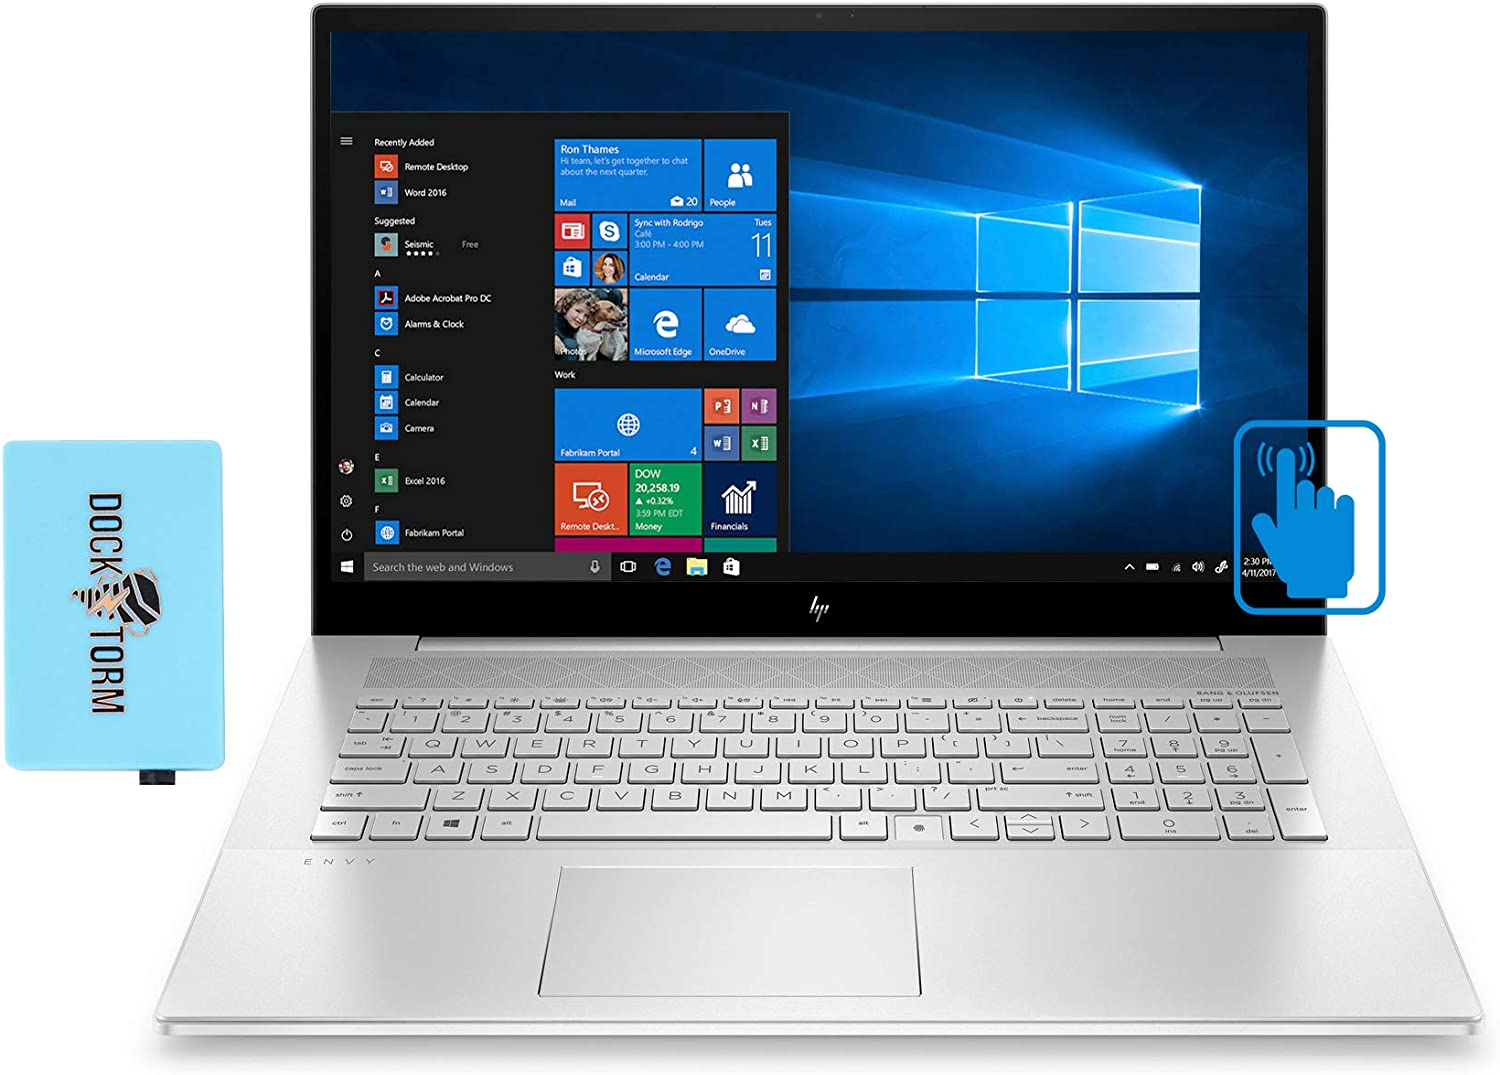 HP Envy - 17t-cg100 Home and Business Laptop (Intel i7-1165G7 4-Core, 32GB RAM, 1TB PCIe SSD, MX450, 17.3